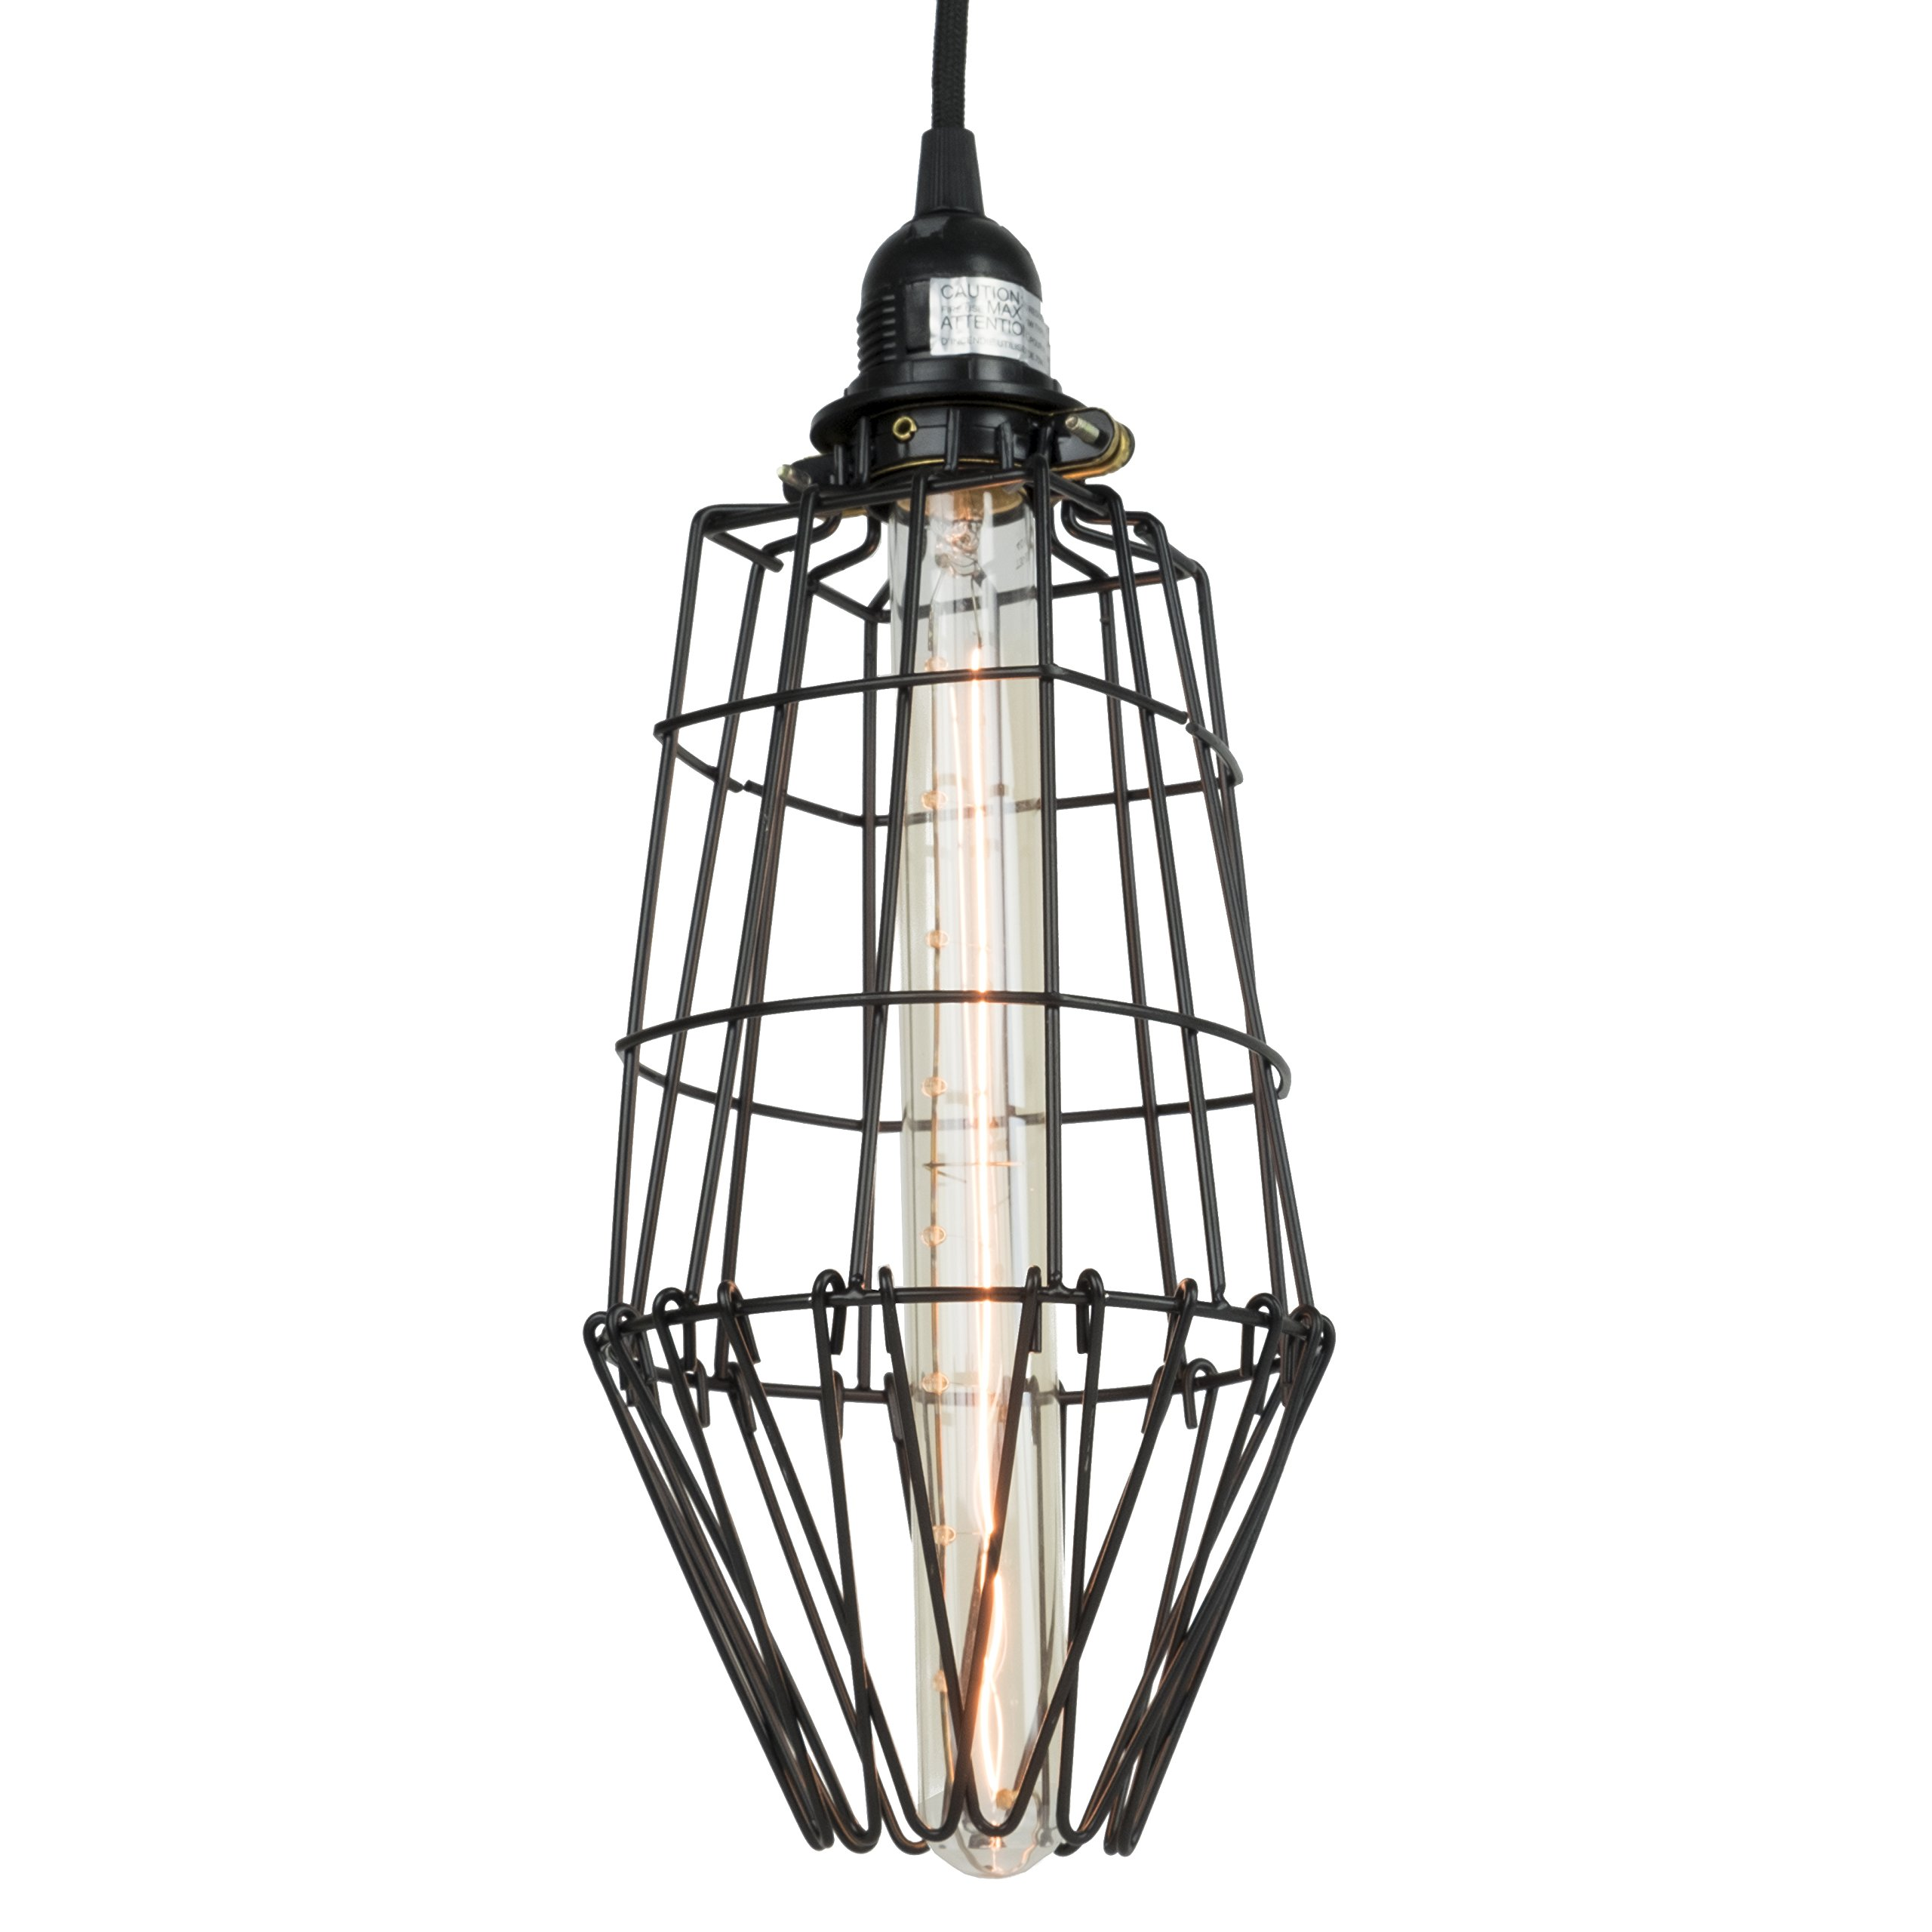 Cheap Wire Cage Light Fixture, find Wire Cage Light Fixture deals on ...